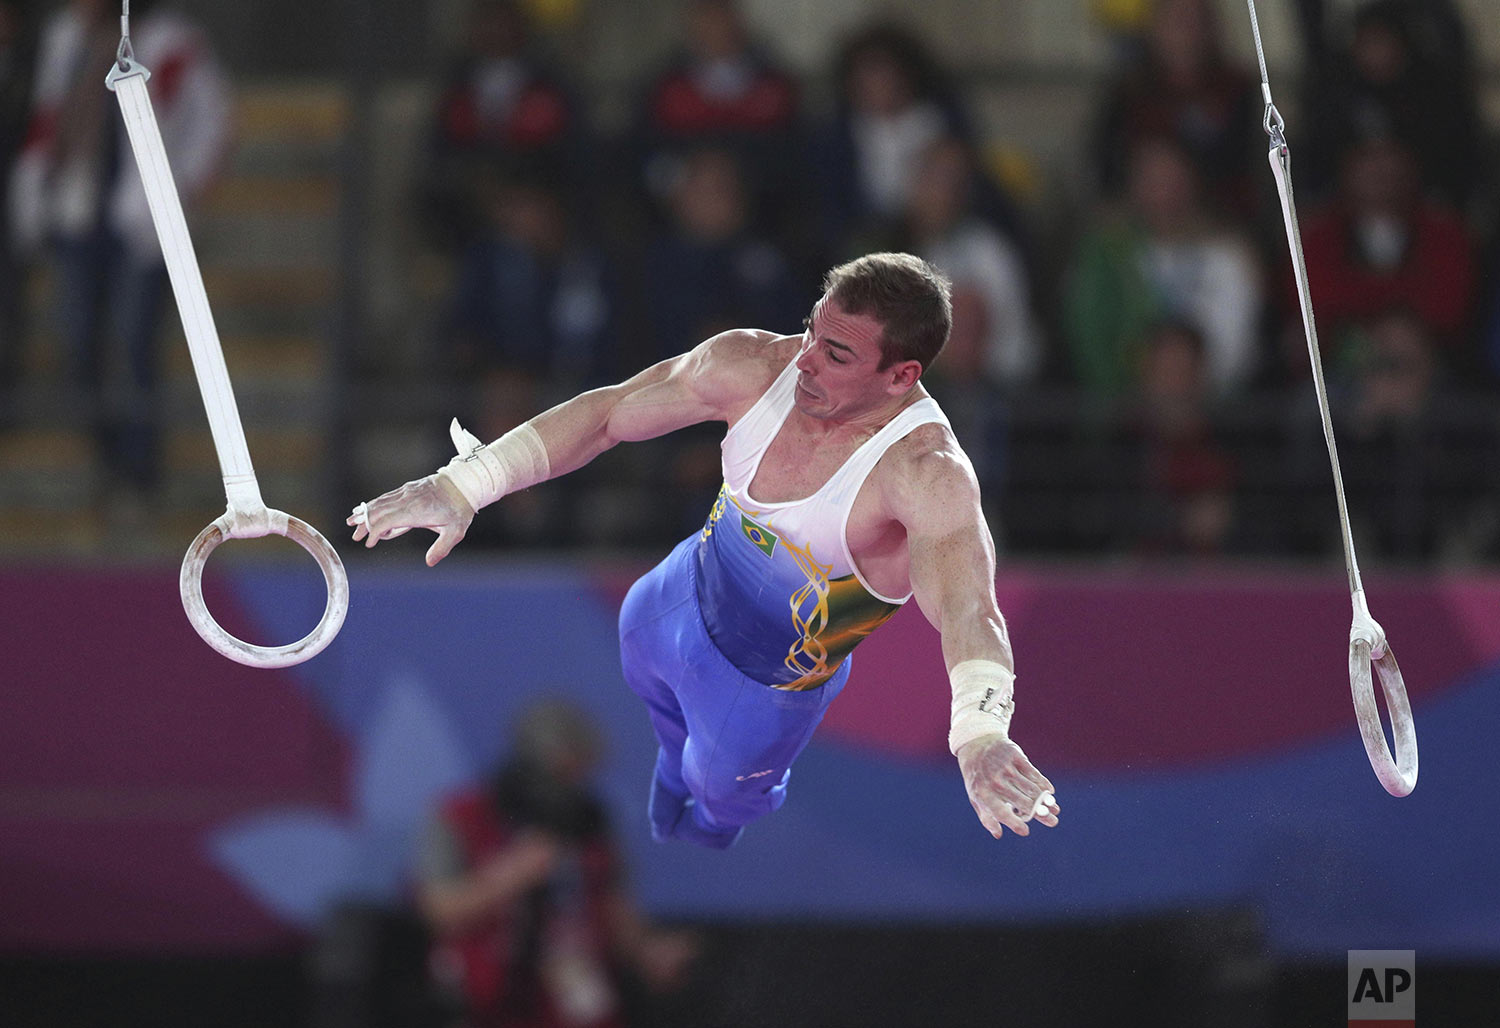 Arthur Zanetti of Brazil performs on the rings during the men's gymnastics qualification and team final at the Pan American Games in Lima, Peru, Sunday, July 28, 2019. (AP Photo/Martin Mejia)